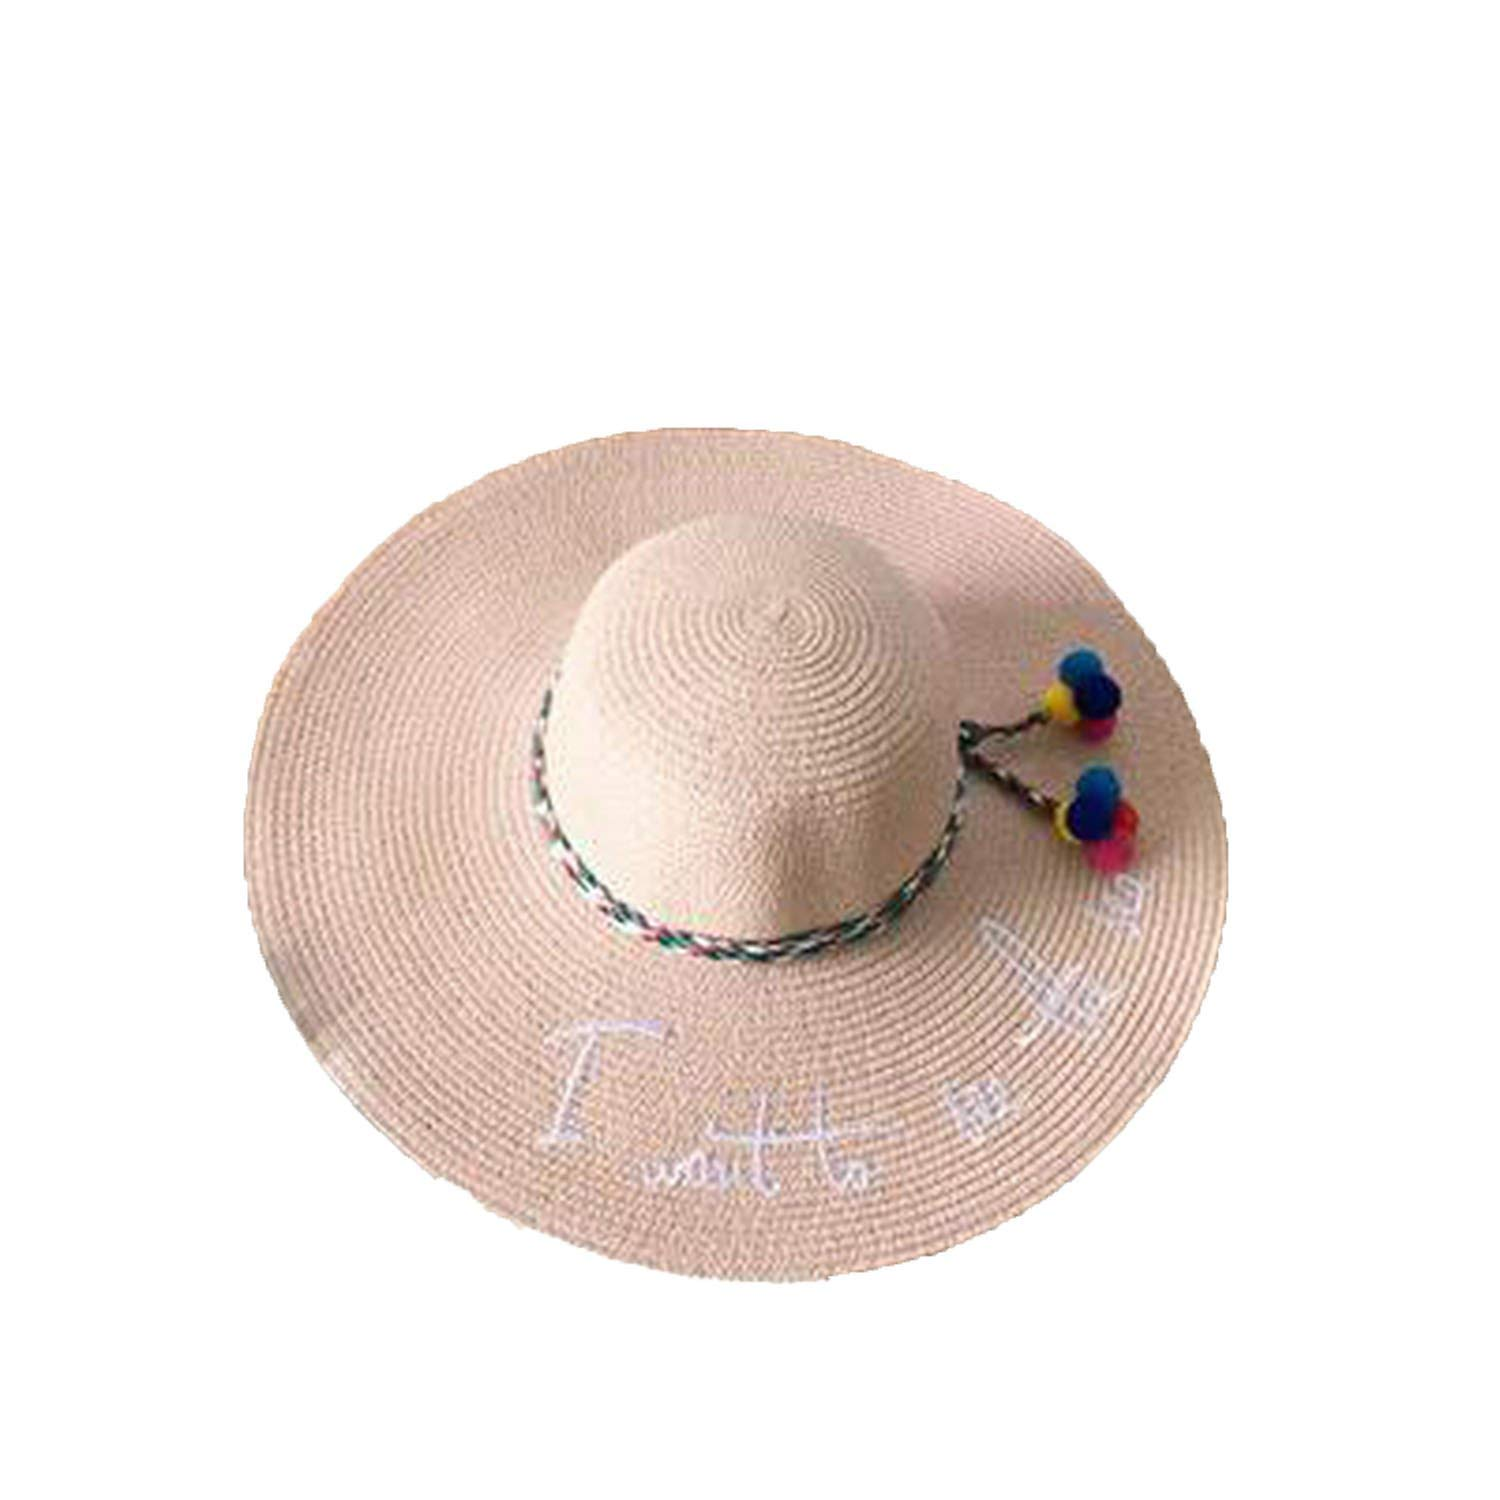 Collocation-Online 2018 Letter Embroidery Cap Big Brim Ladies Summer Straw Youth Hats for Women Sunhat